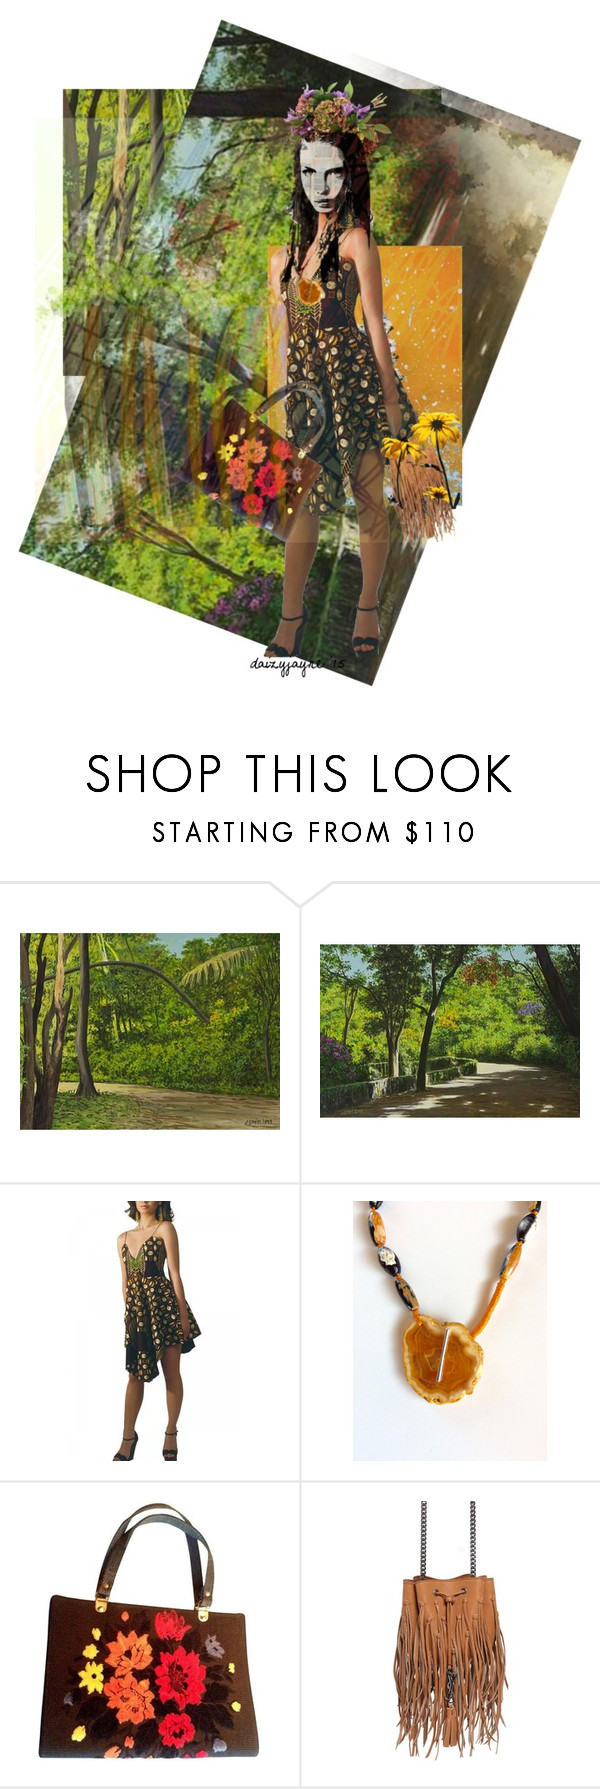 """""""forestry"""" by daizyjayne ❤ liked on Polyvore featuring NOVICA, Tina Lobondi, Yves Saint Laurent and contestentry"""